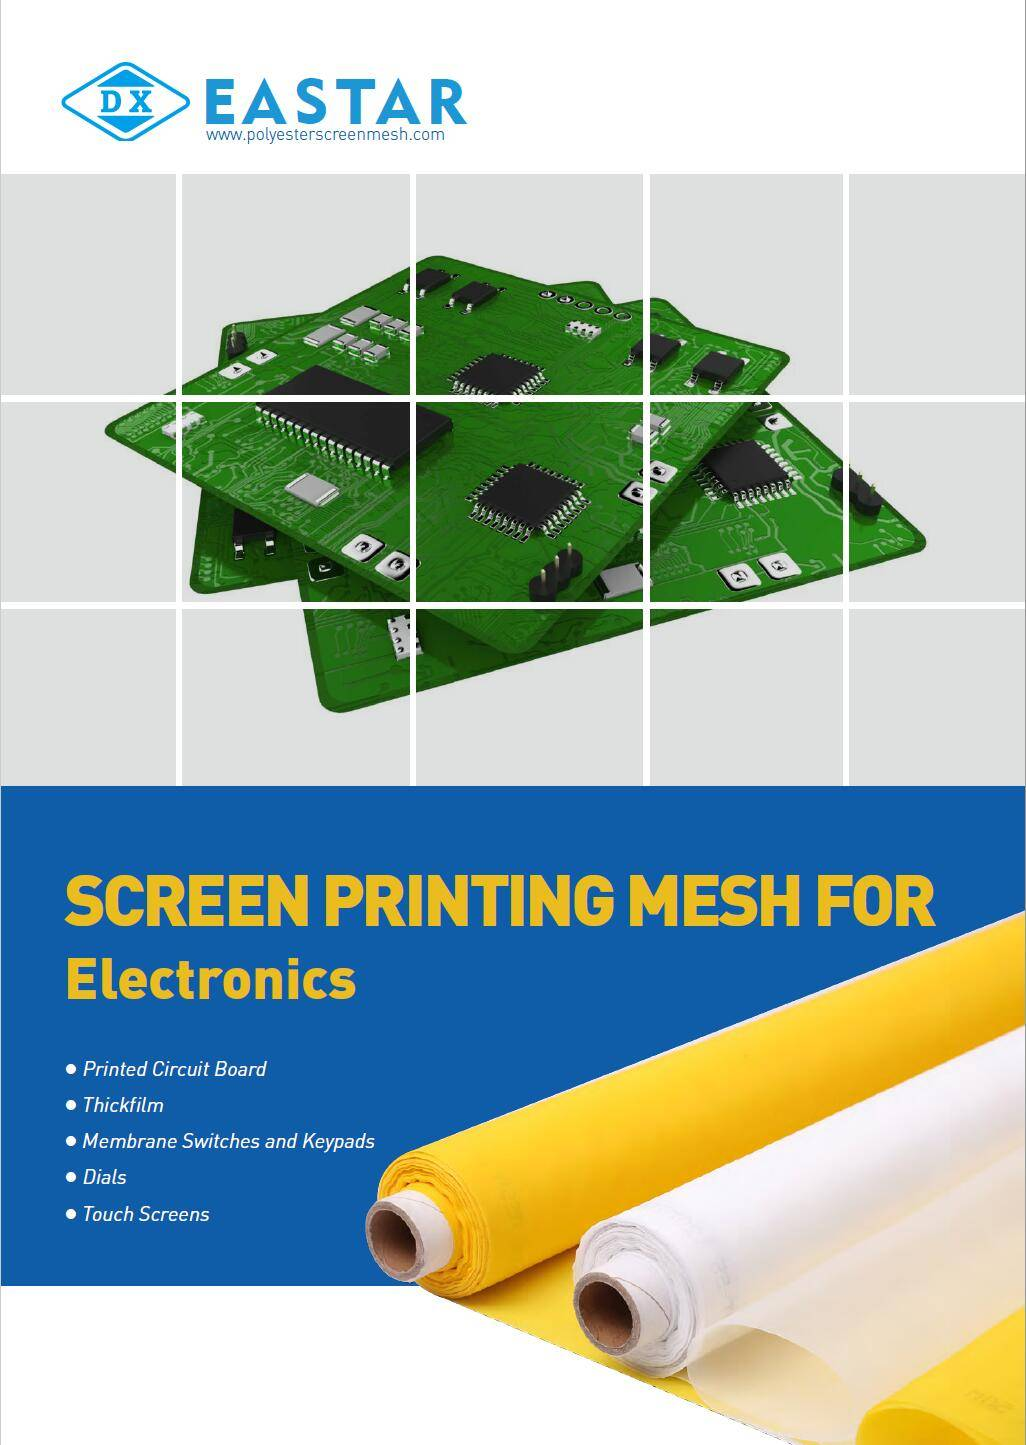 Polyester screen printing mesh for electronics screen printing.